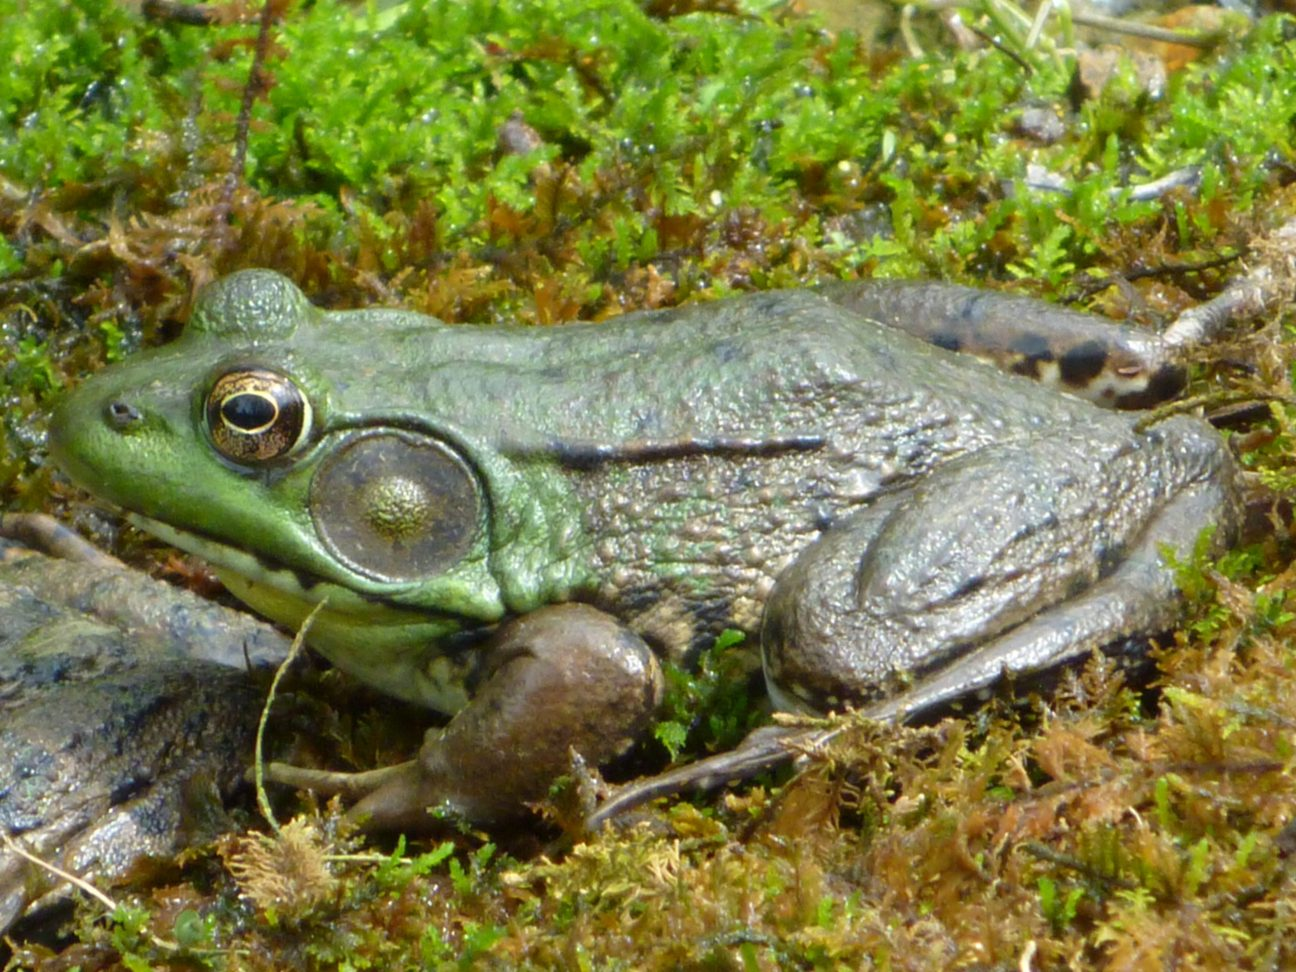 Male_Green_Frog_-_Hunterdon_County,_NJ